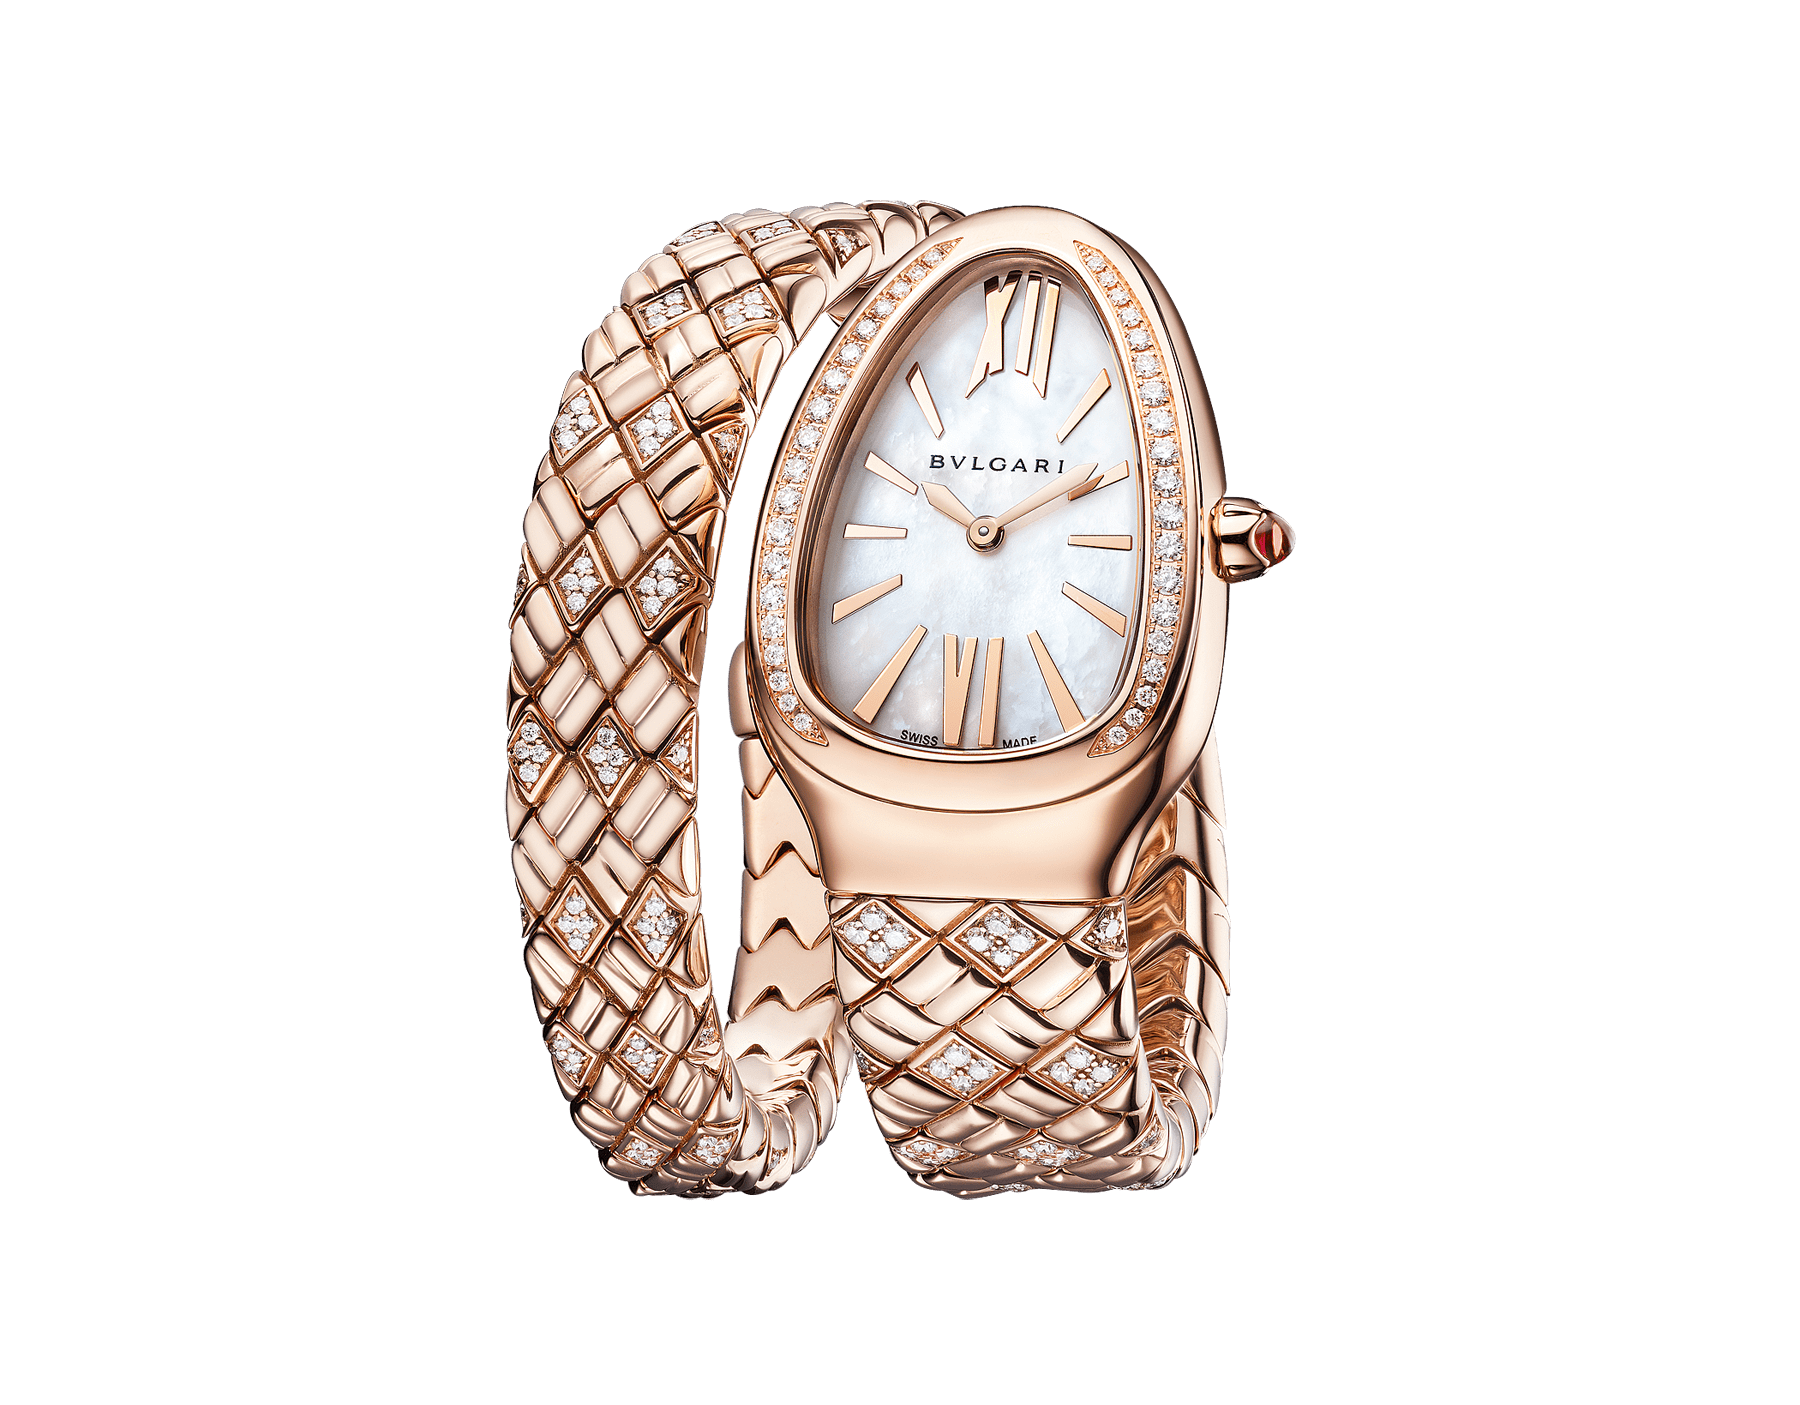 Serpenti Spiga single-spiral watch with 18 kt rose gold case and bracelet set with diamonds, and white mother-of-pearl dial 103250 image 2